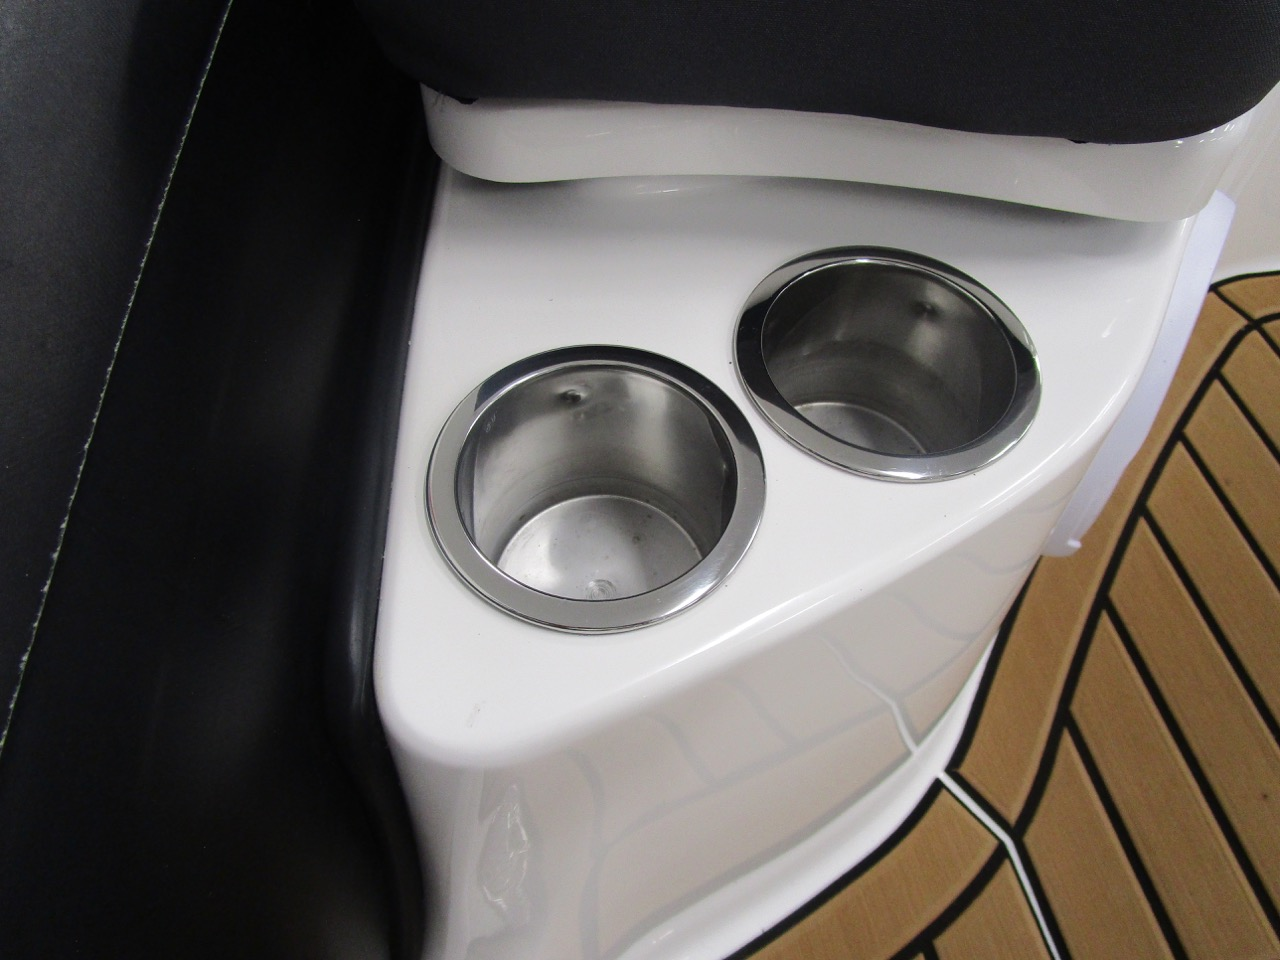 GRAND G500 RIB stainless steel cup holder